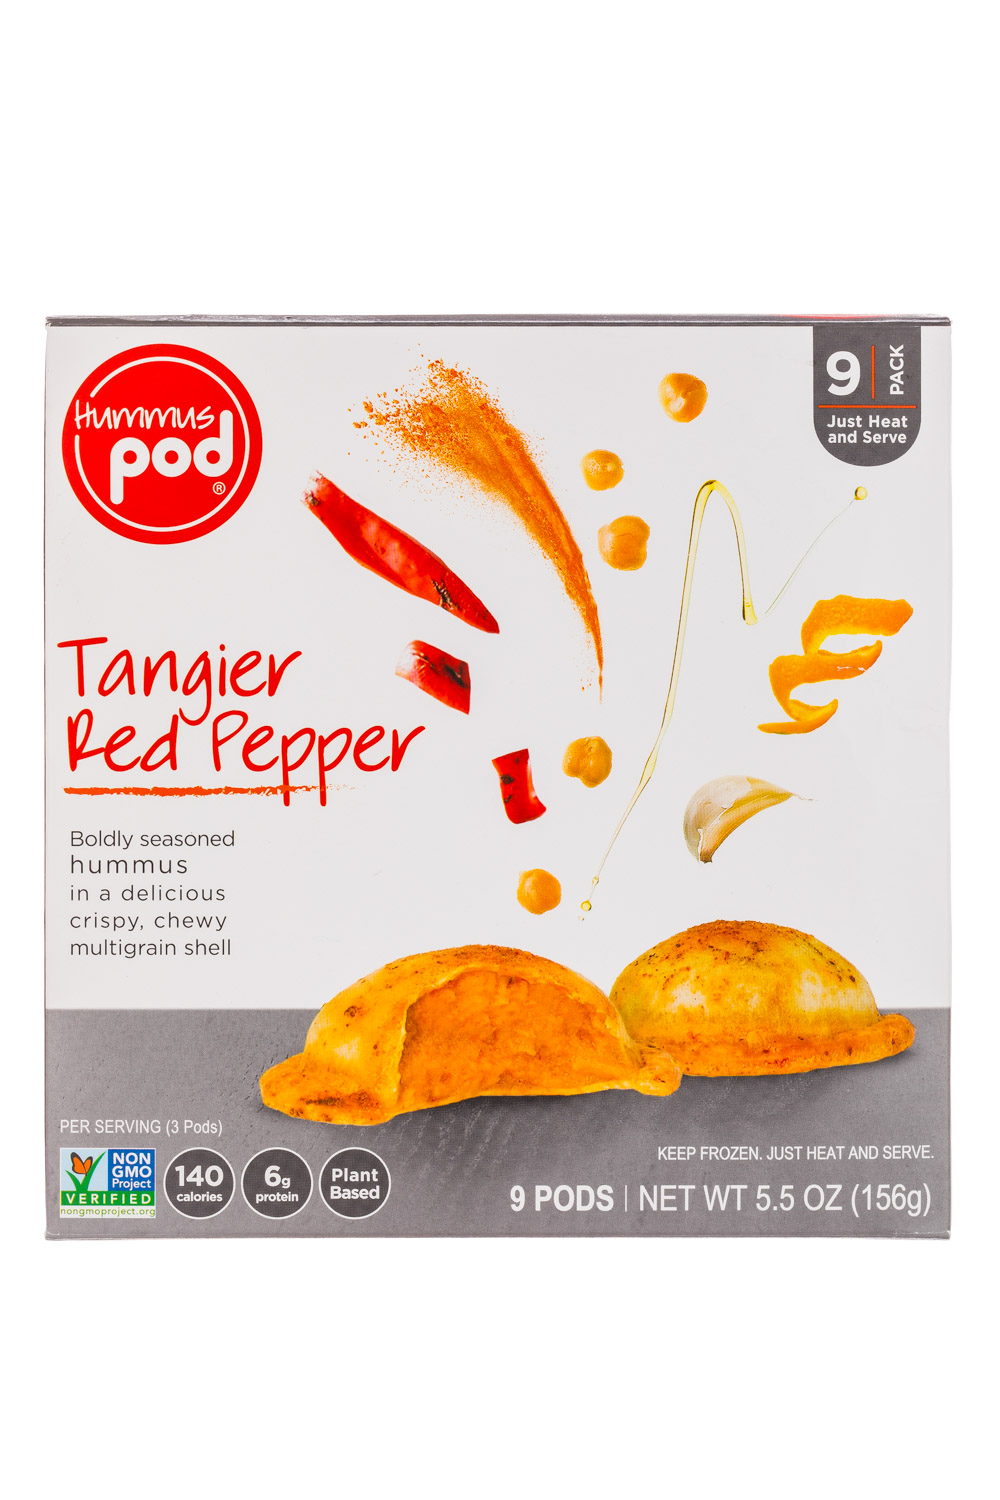 Tangier Red Pepper